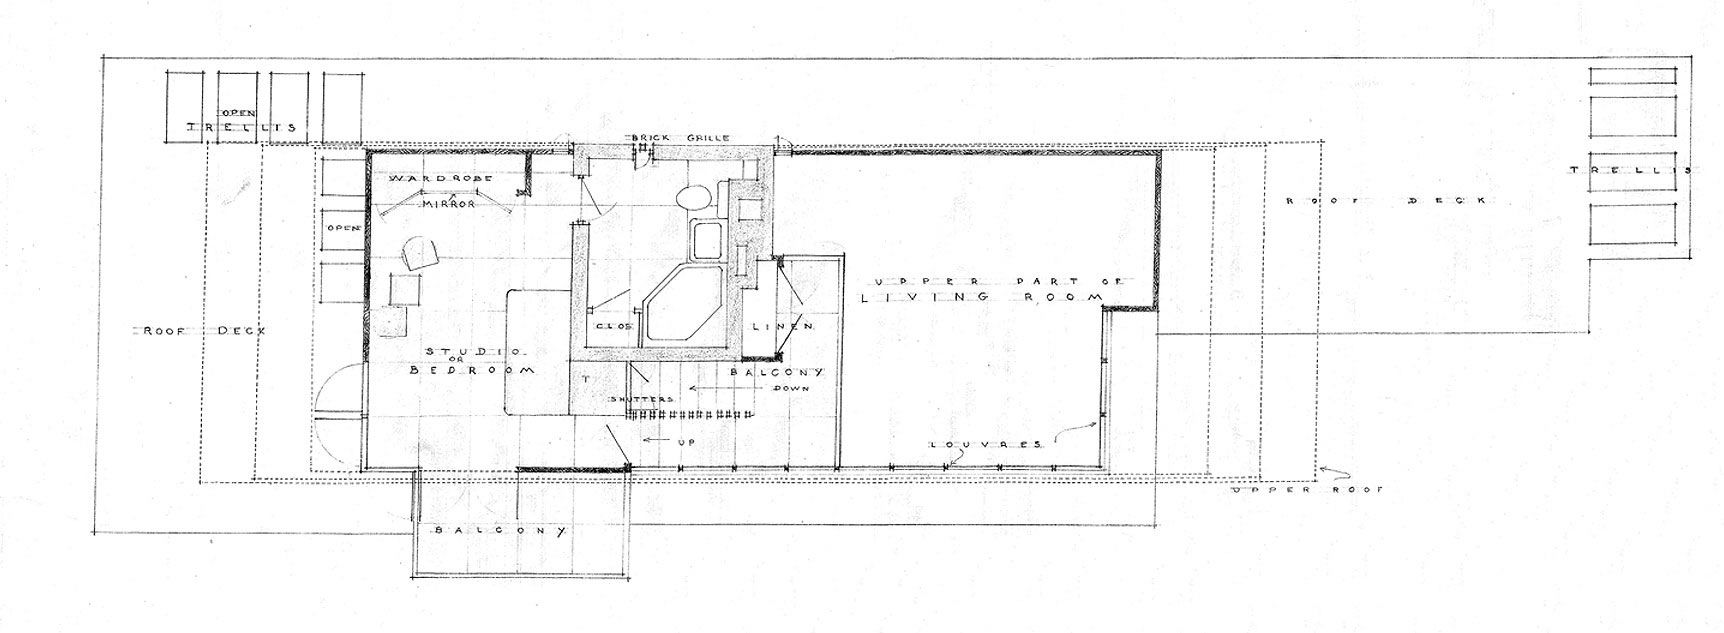 Usonian house plans usonia 1 99 invisible usonian house for Frank lloyd wright usonian home plans